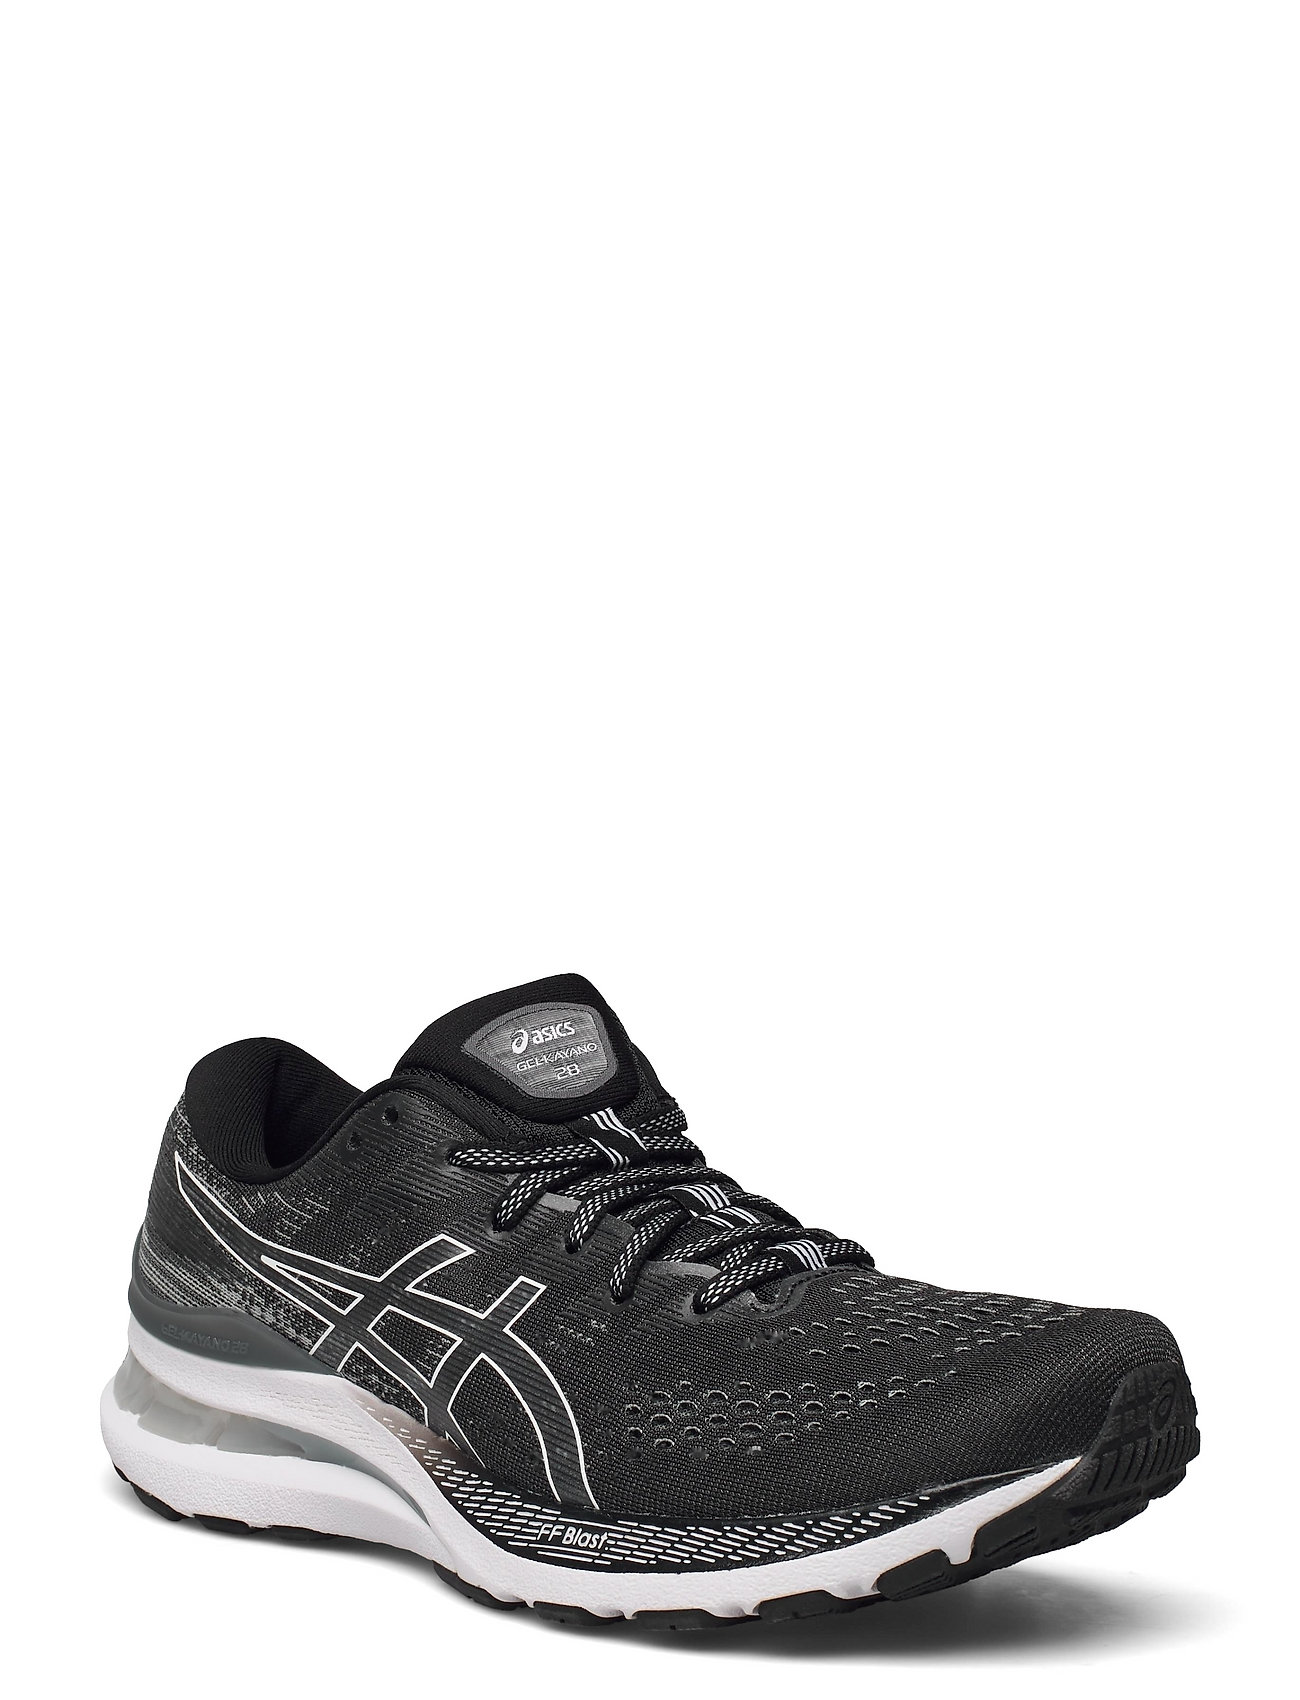 Gel-Kayano 28 Shoes Sport Shoes Running Shoes Sort Asics